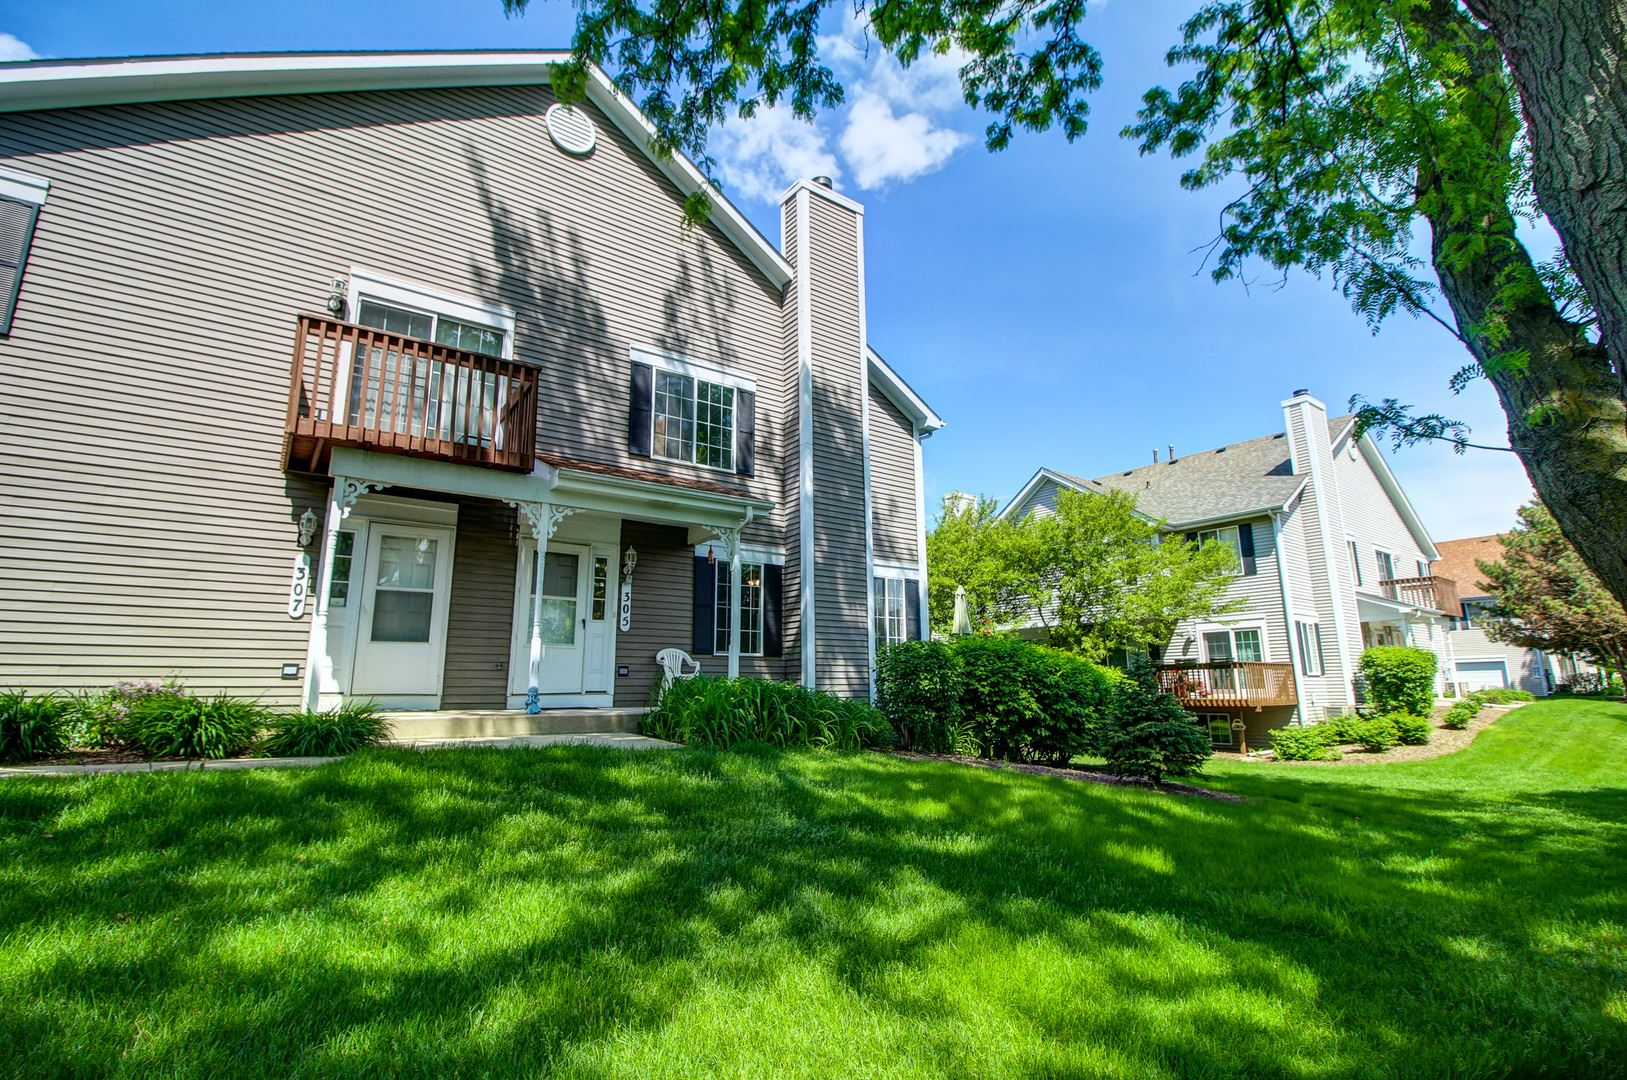 305 Sandhurst Lane #305, South Elgin, IL 60177 - #: 10728129